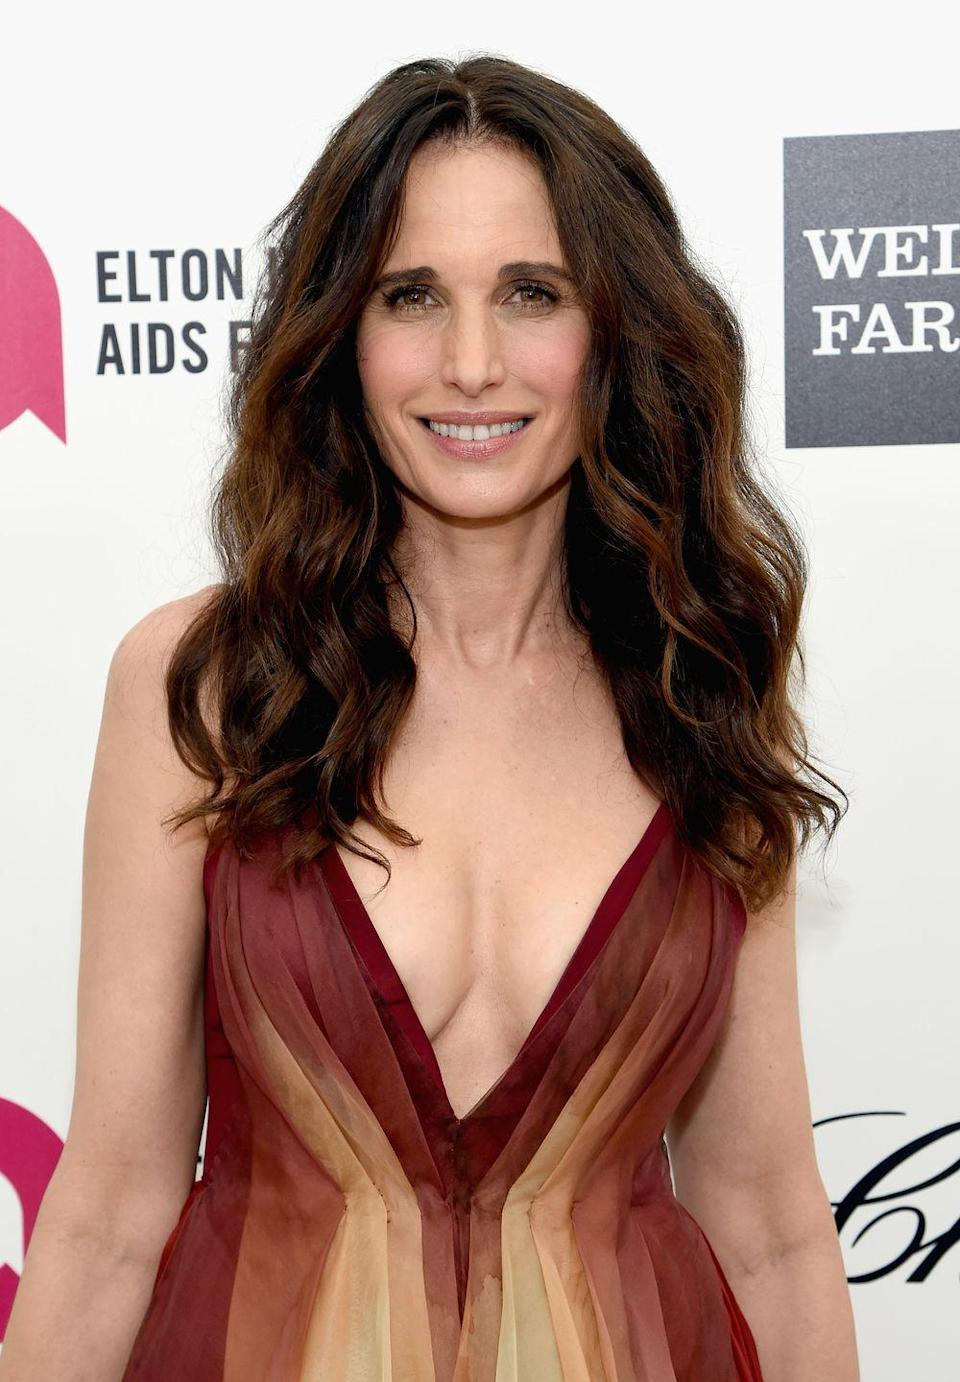 "<p>Actress Andie MacDowell worked for the fast-food chain, and she brought her signature sunny personality to work every day. Speaking to Cody Teets, author of <a href=""https://www.amazon.com/Golden-Opportunity-Remarkable-Careers-McDonalds/dp/1604332794?tag=syn-yahoo-20&ascsubtag=%5Bartid%7C2140.g.27361202%5Bsrc%7Cyahoo-us"" rel=""nofollow noopener"" target=""_blank"" data-ylk=""slk:Golden Opportunity: Remarkable Careers That Began at McDonald's"" class=""link rapid-noclick-resp""><em>Golden Opportunity: Remarkable Careers That Began at McDonald's</em></a>, she referred to McDonald's as being ""a great environment to work in, with lots of camaraderie and teamwork.""</p>"